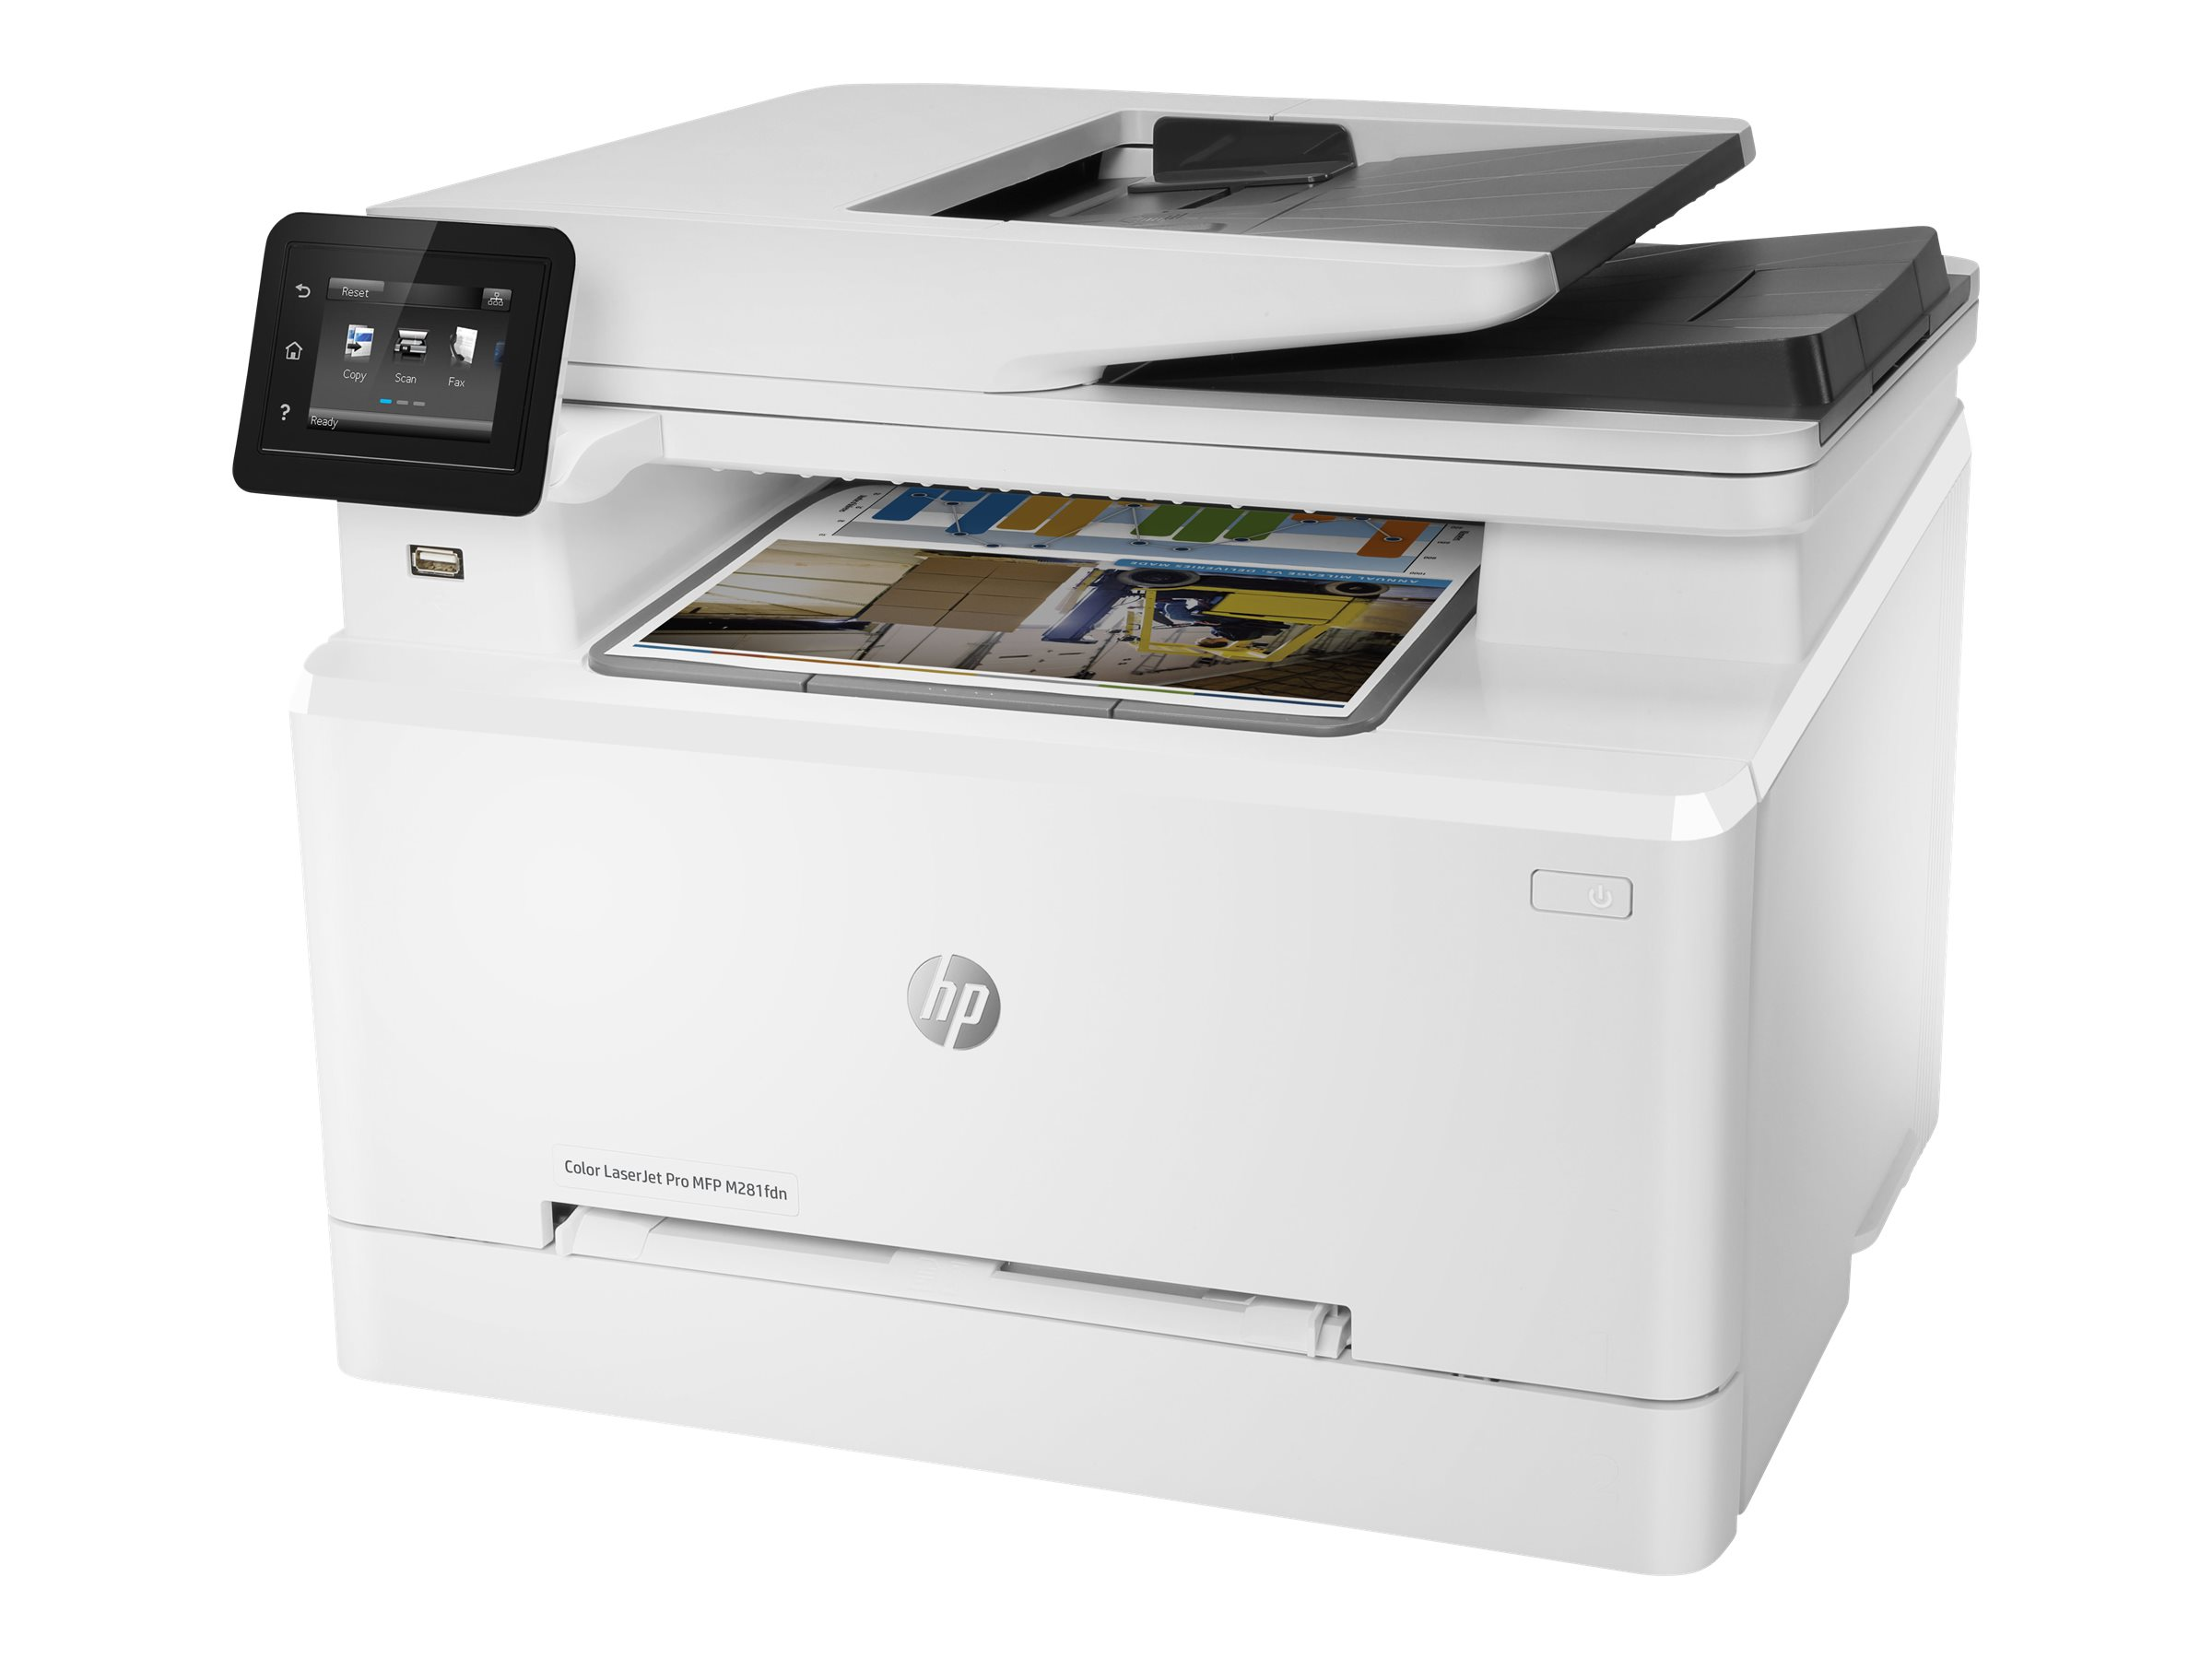 HP Color LaserJet Pro MFP M281fdn - Multifunktionsdrucker - Farbe - Laser - Legal (216 x 356 mm)